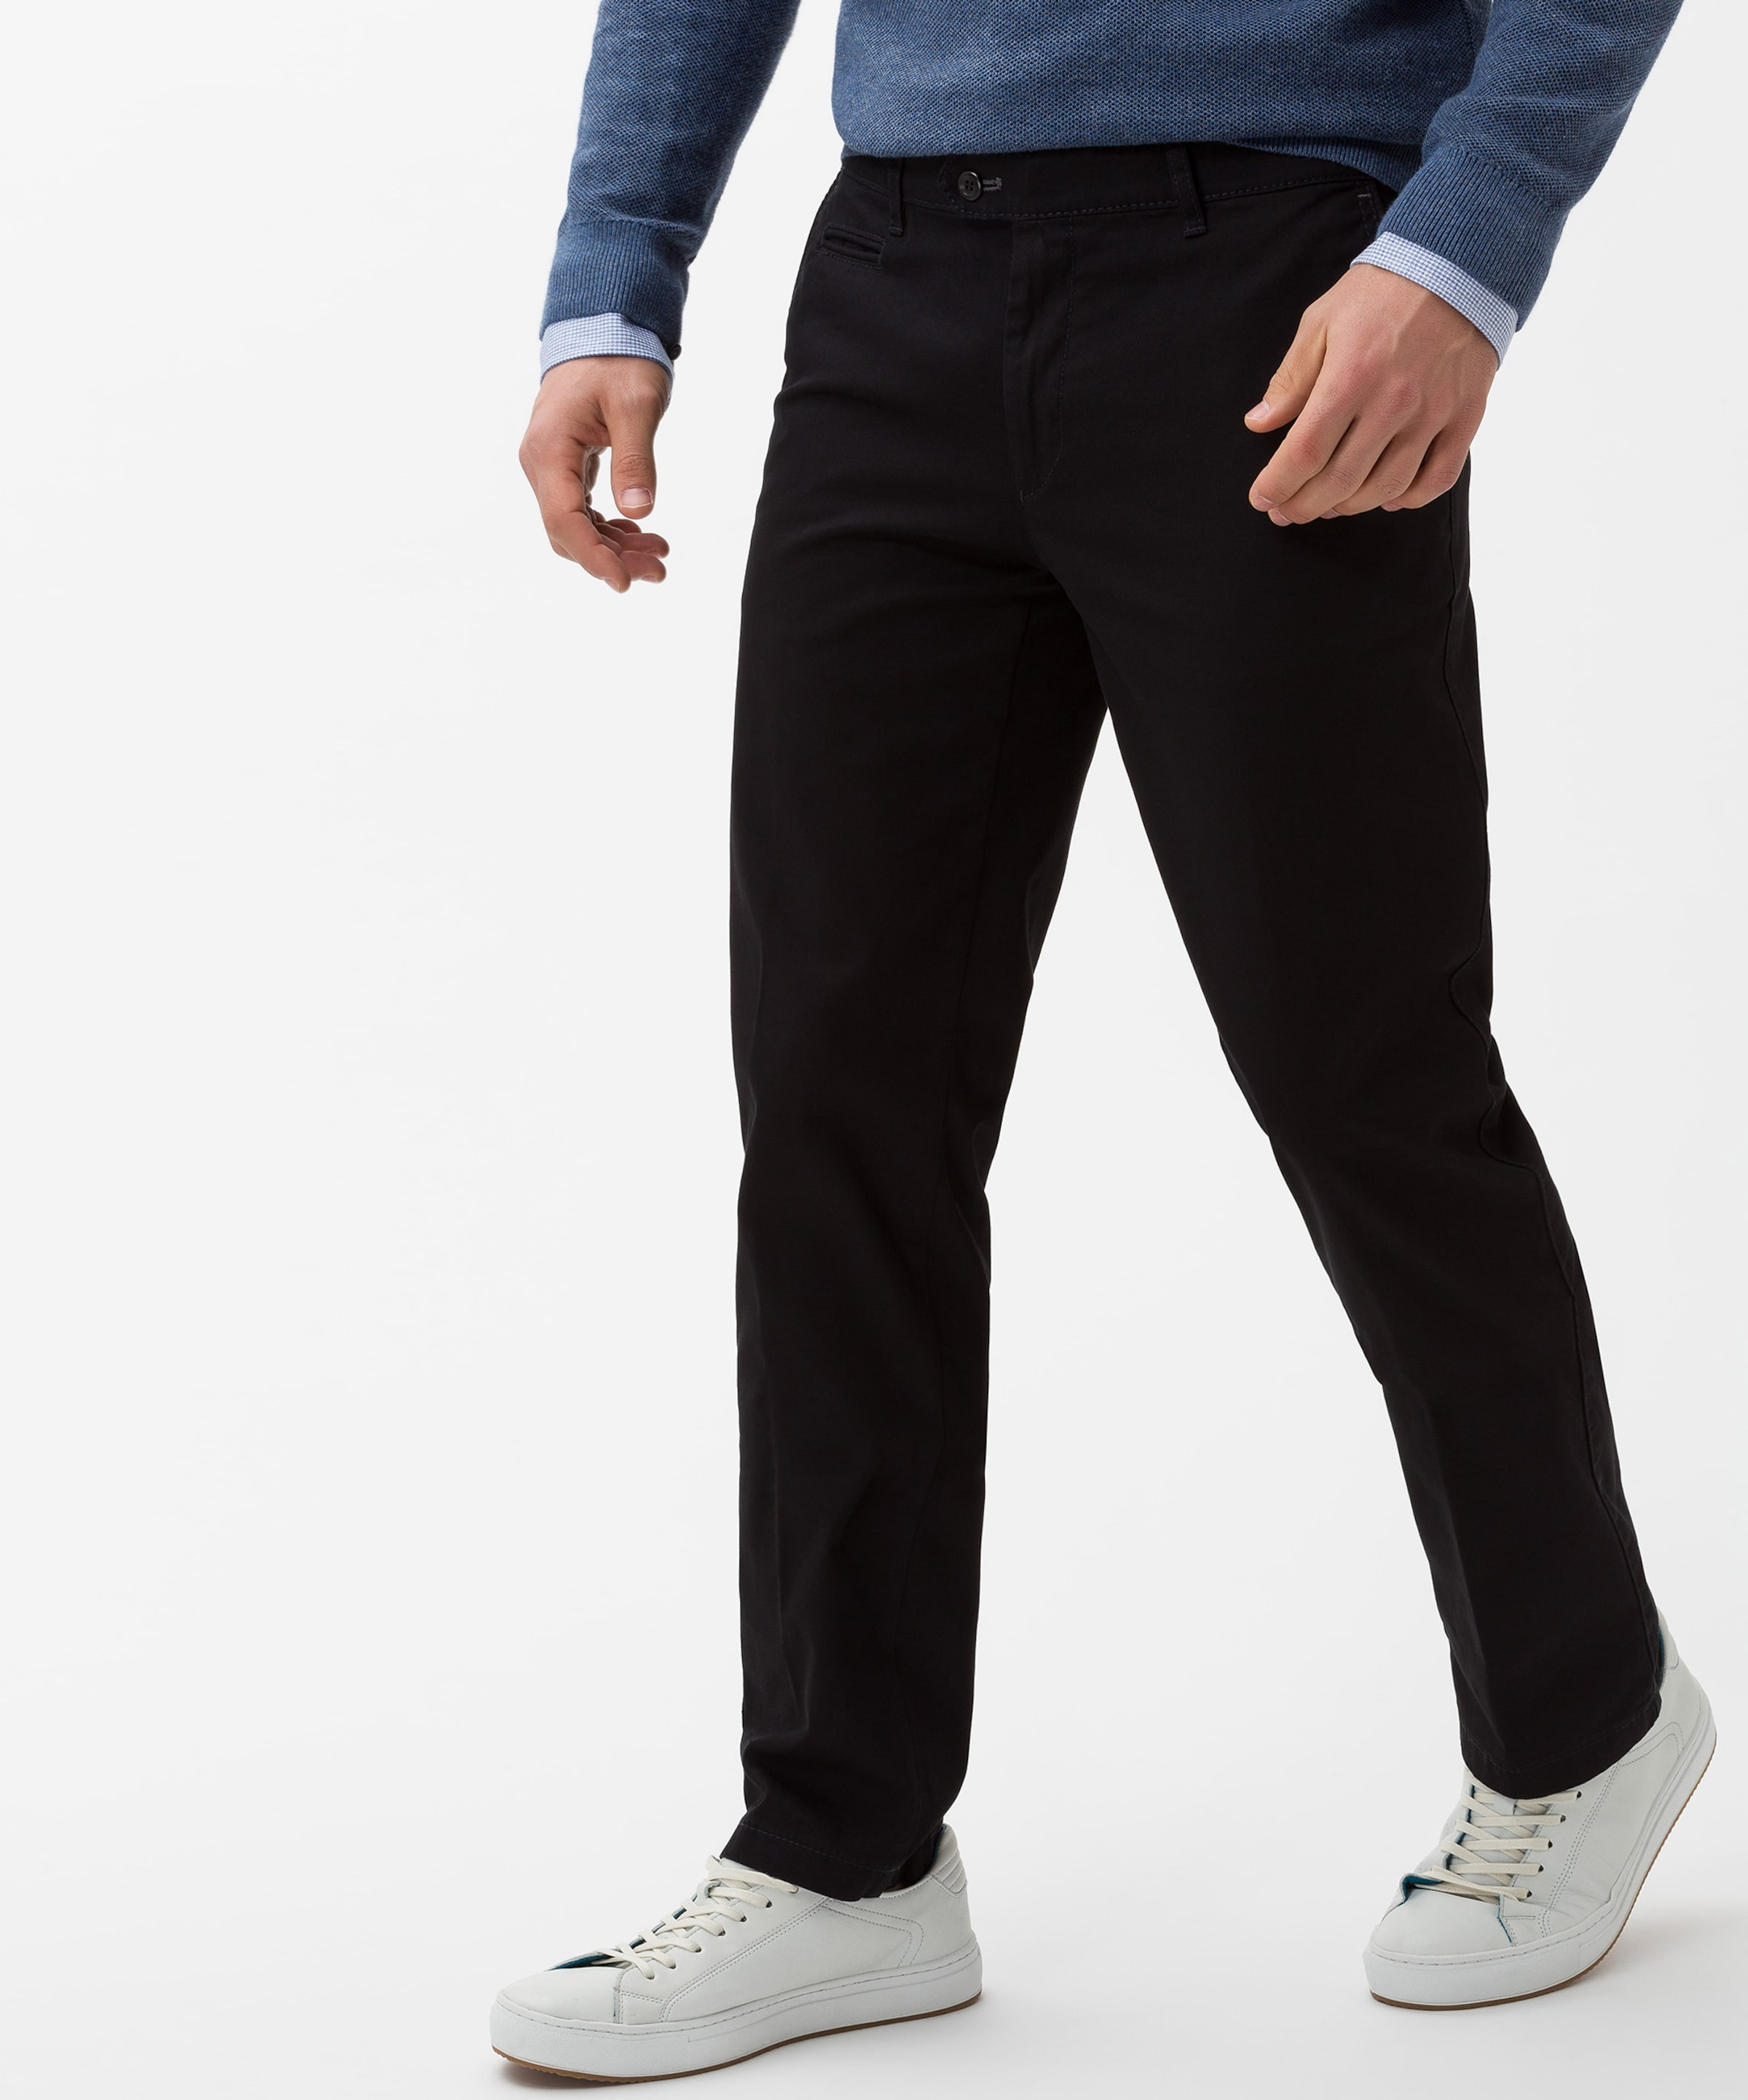 En Noir Pantalon 'everest' Brax Chino QthCrsd